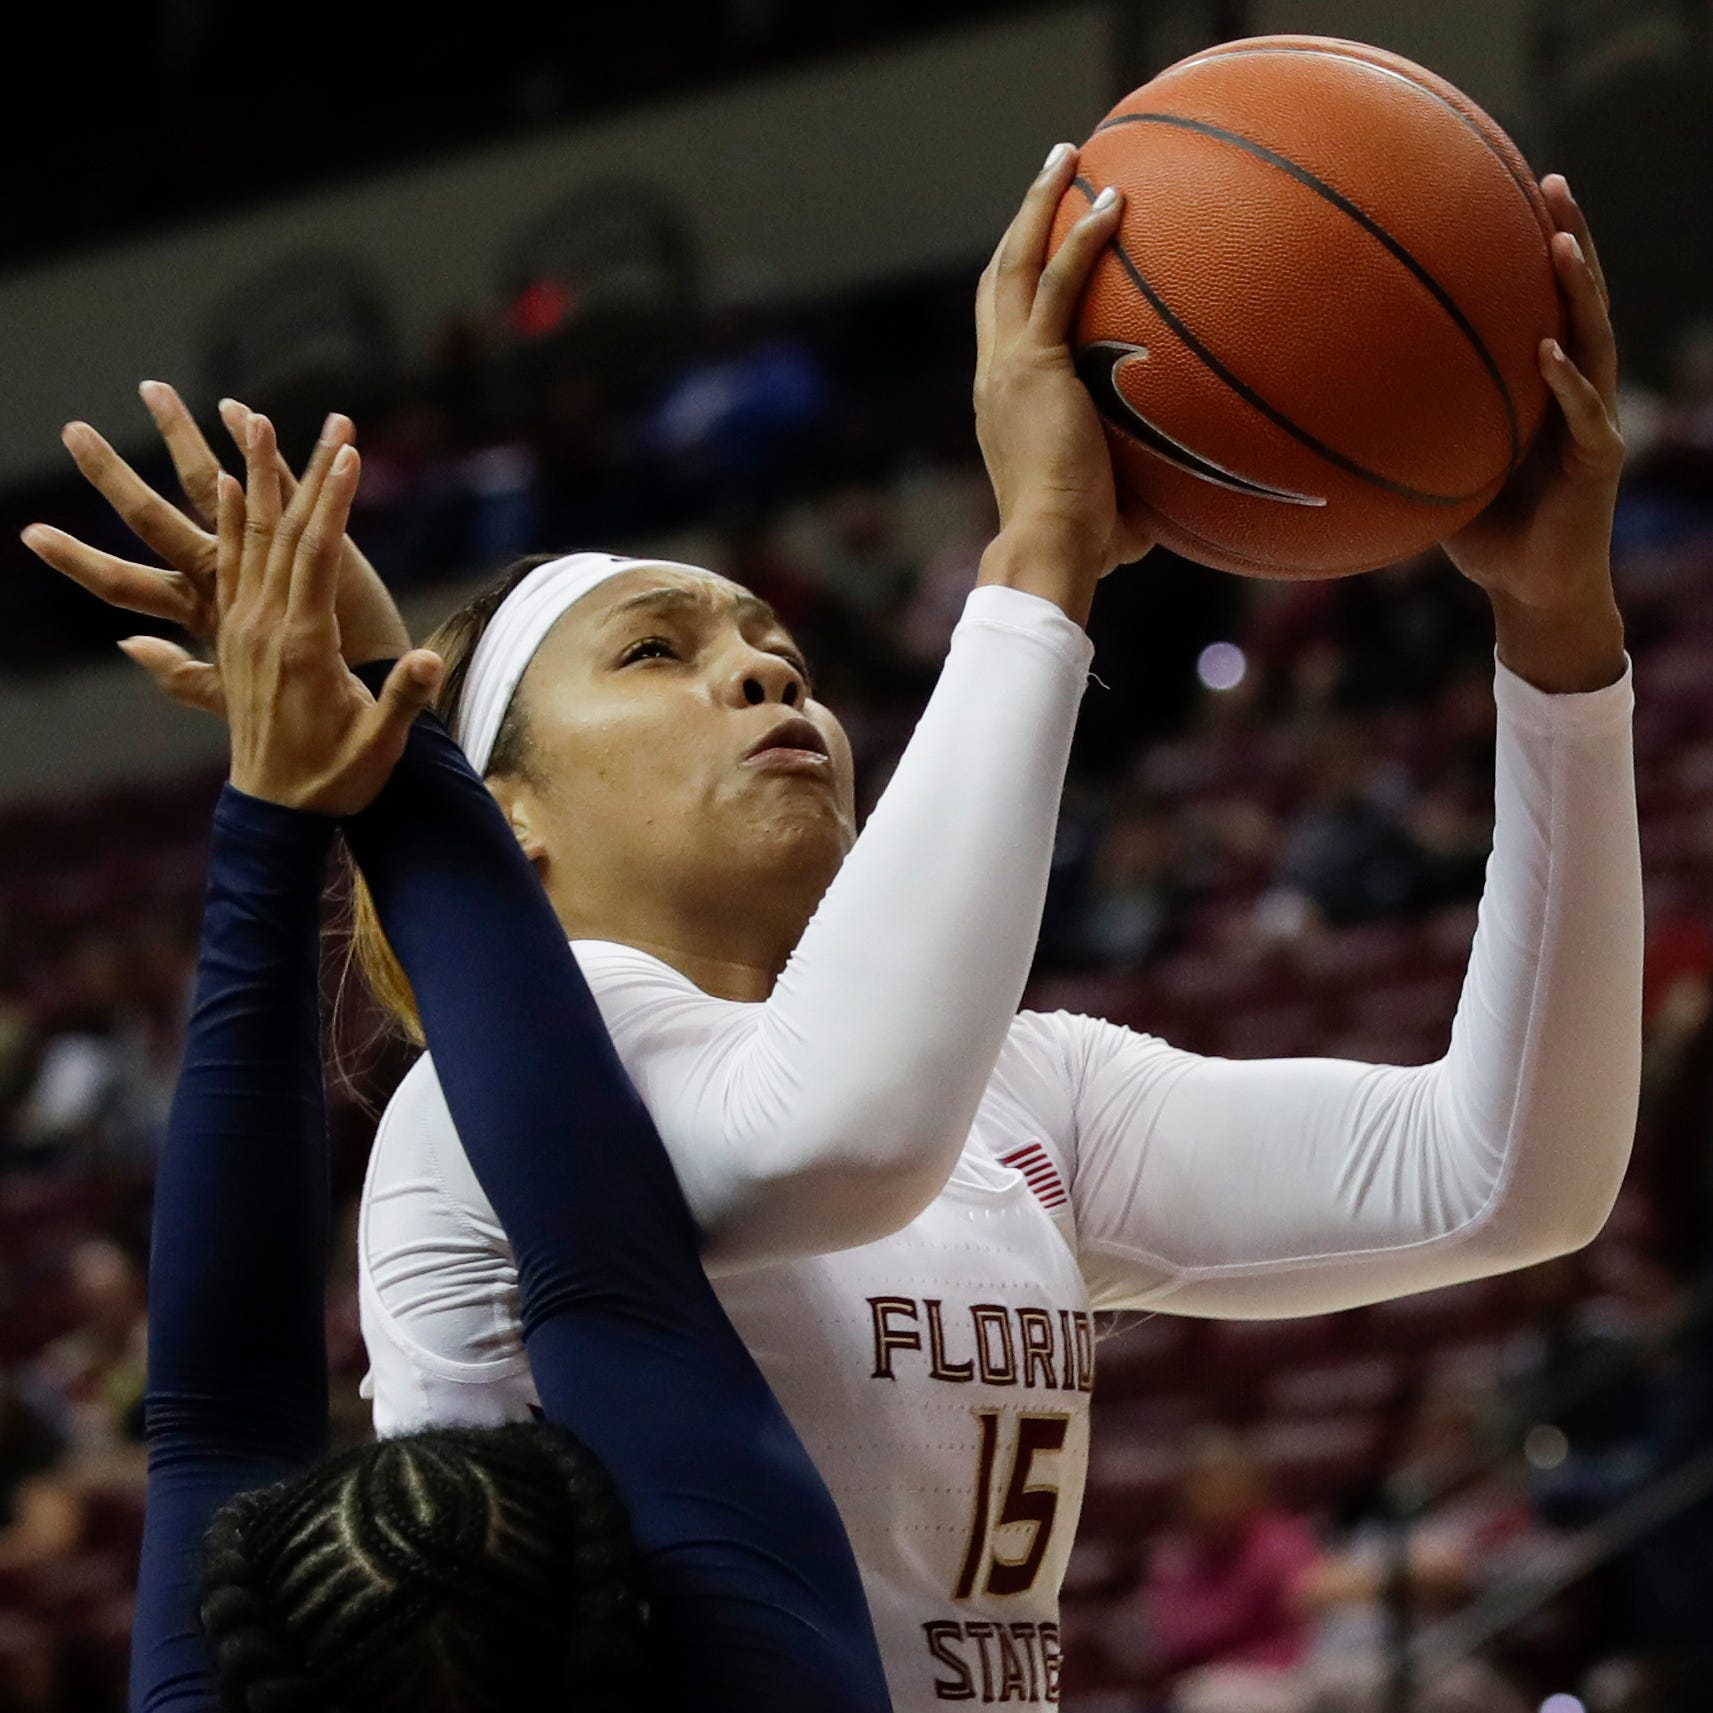 Multi-pronged scoring attack leading Florida State to strong start